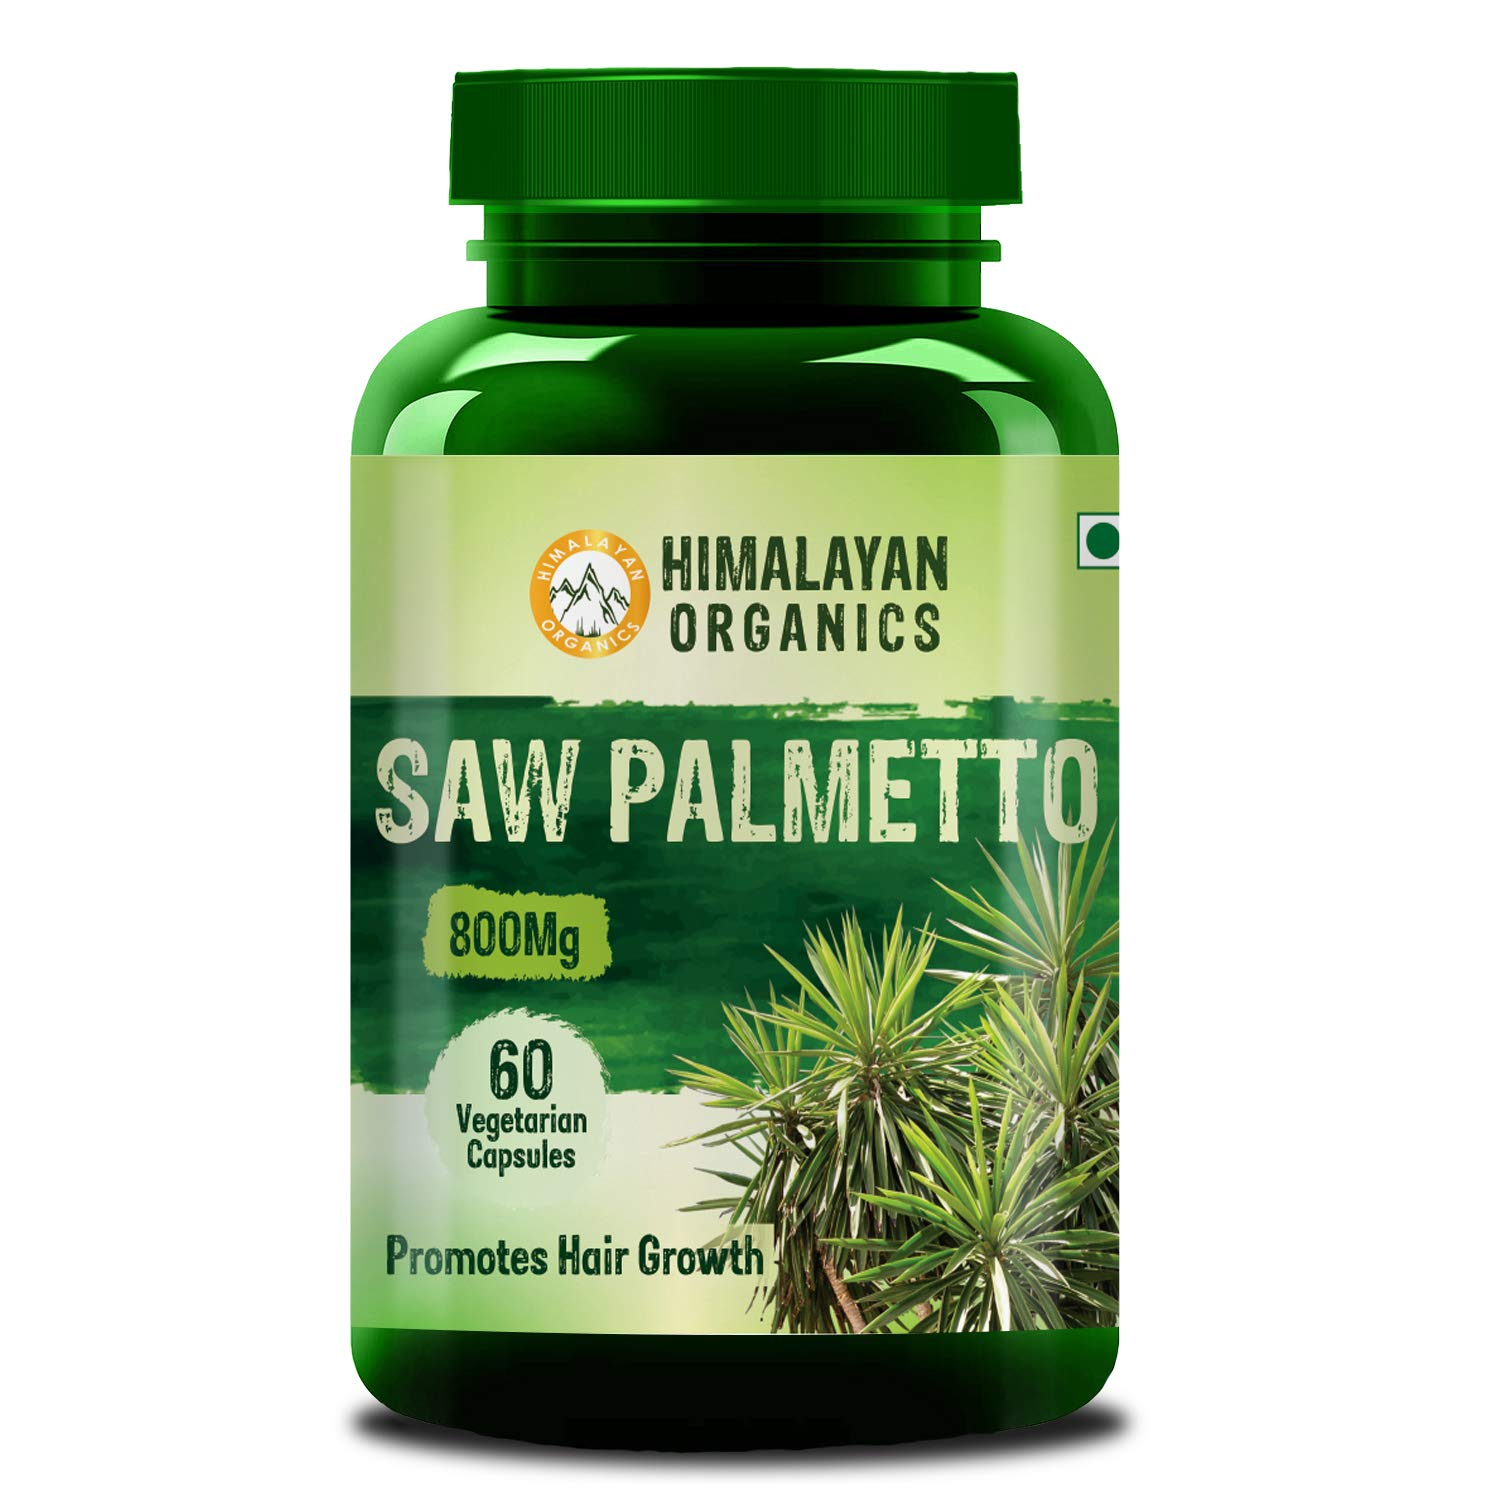 Himalayan Organics Saw Palmetto Extract Capsules For Hair